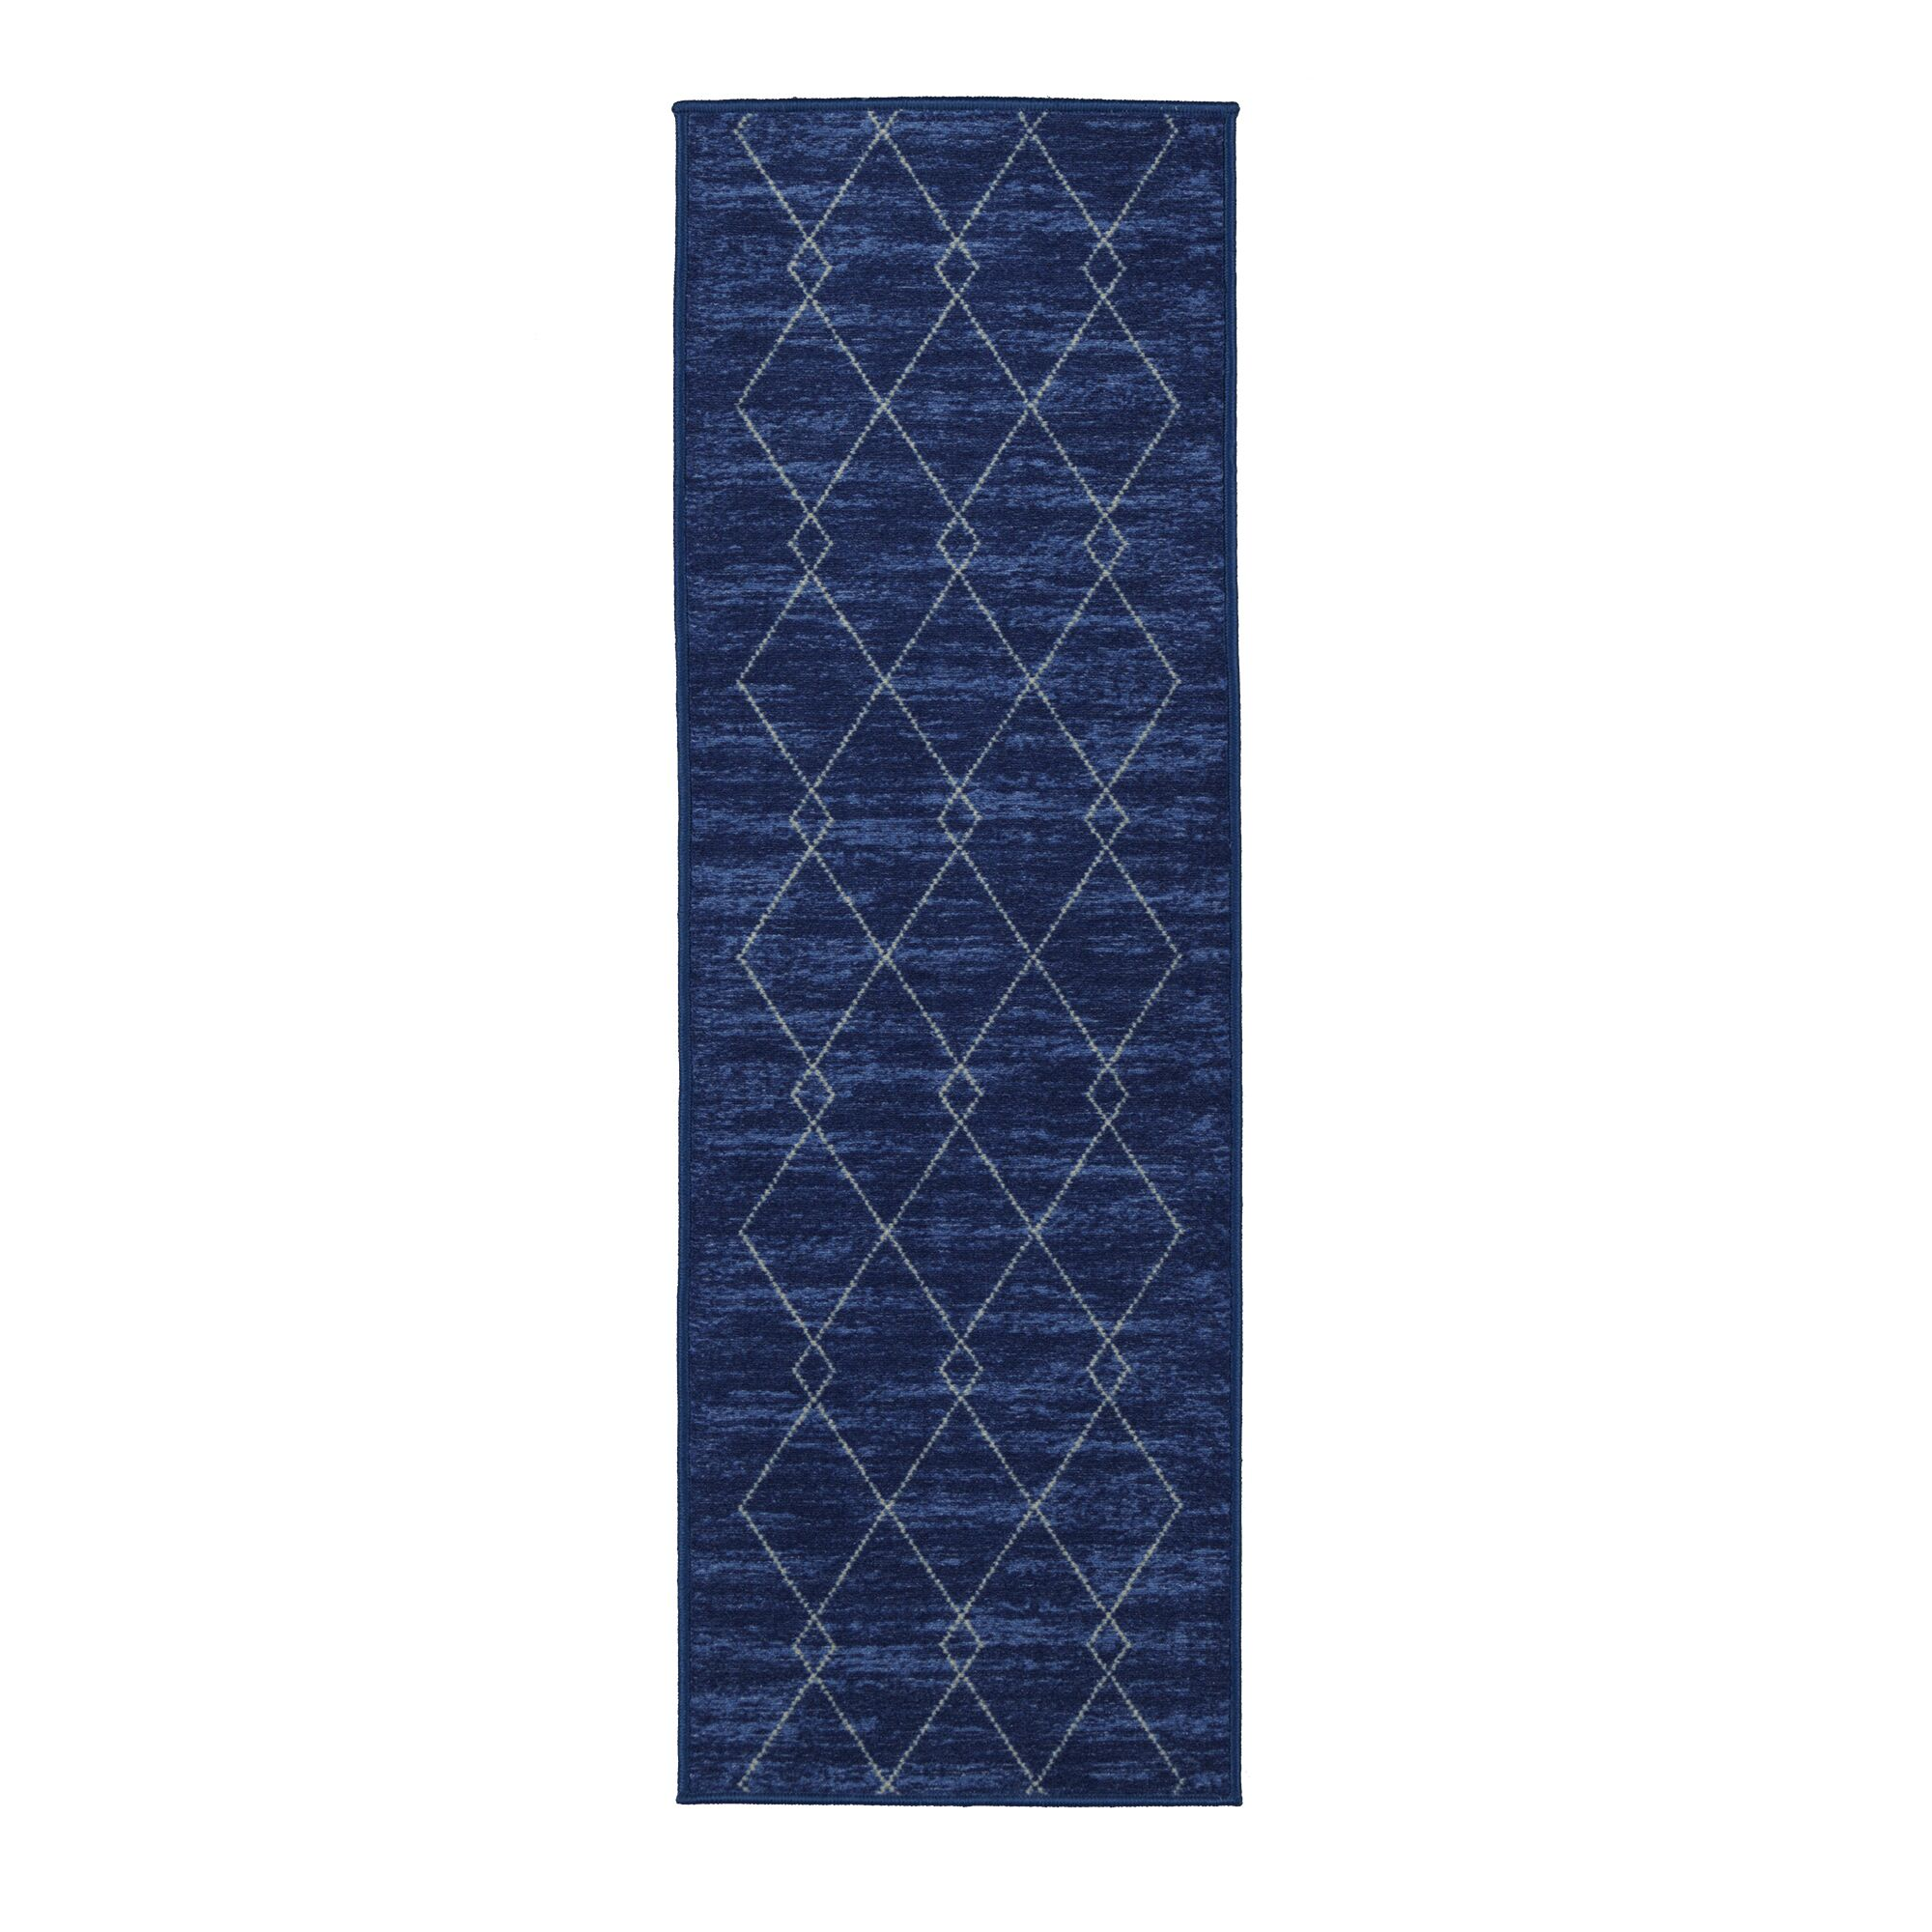 Vathylakas Diamond Trellis Blue Area Rug Rug Size: 8'2